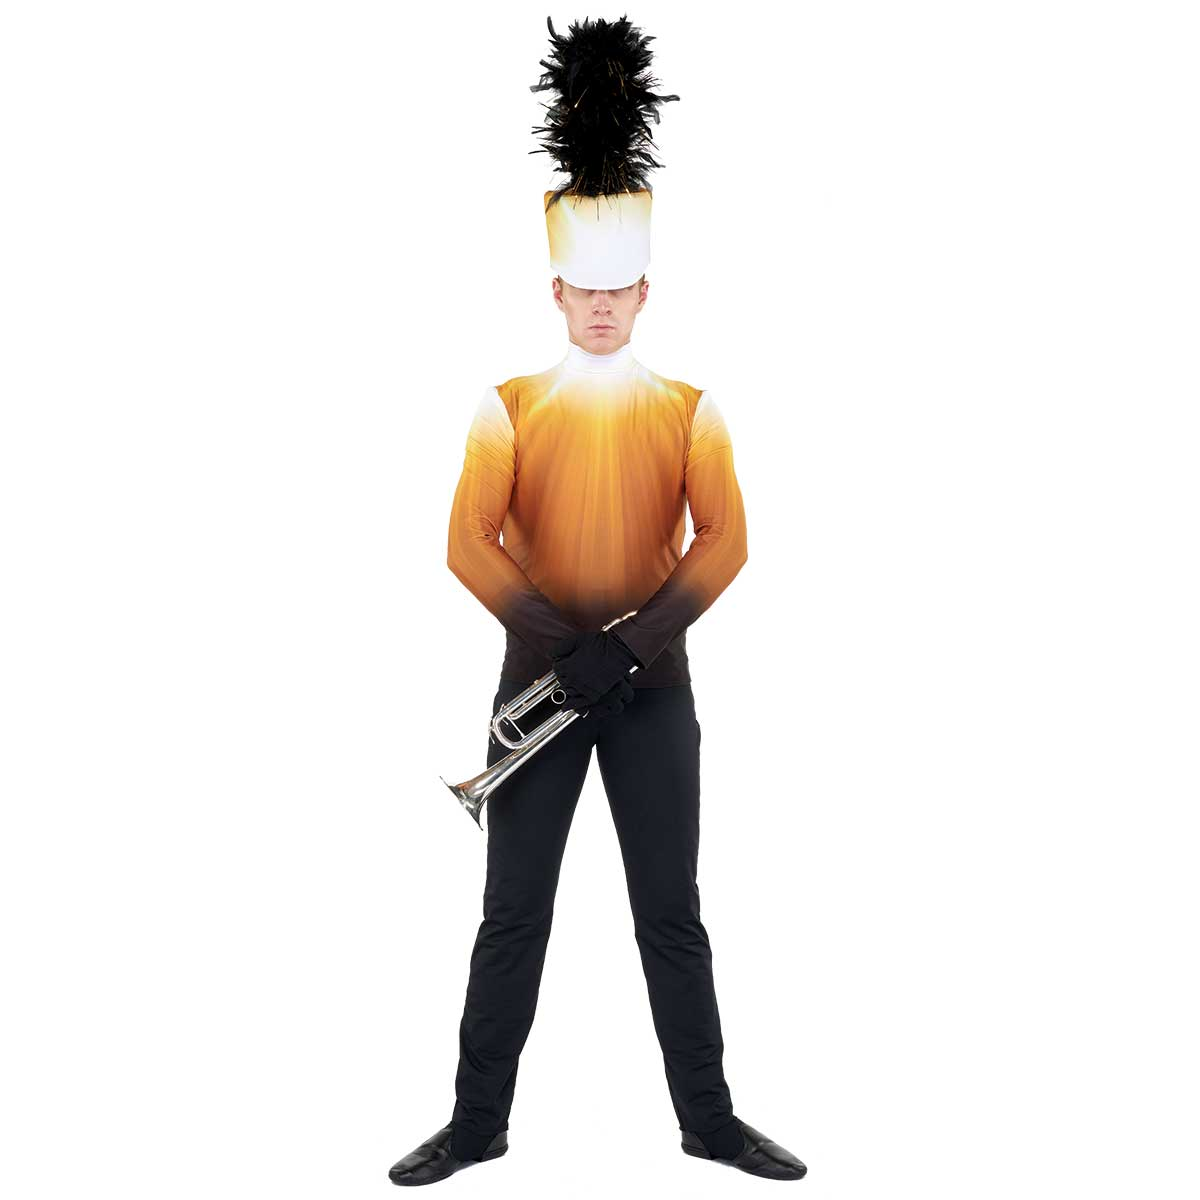 Digital Band Uniforms: Style 1912 Jacket